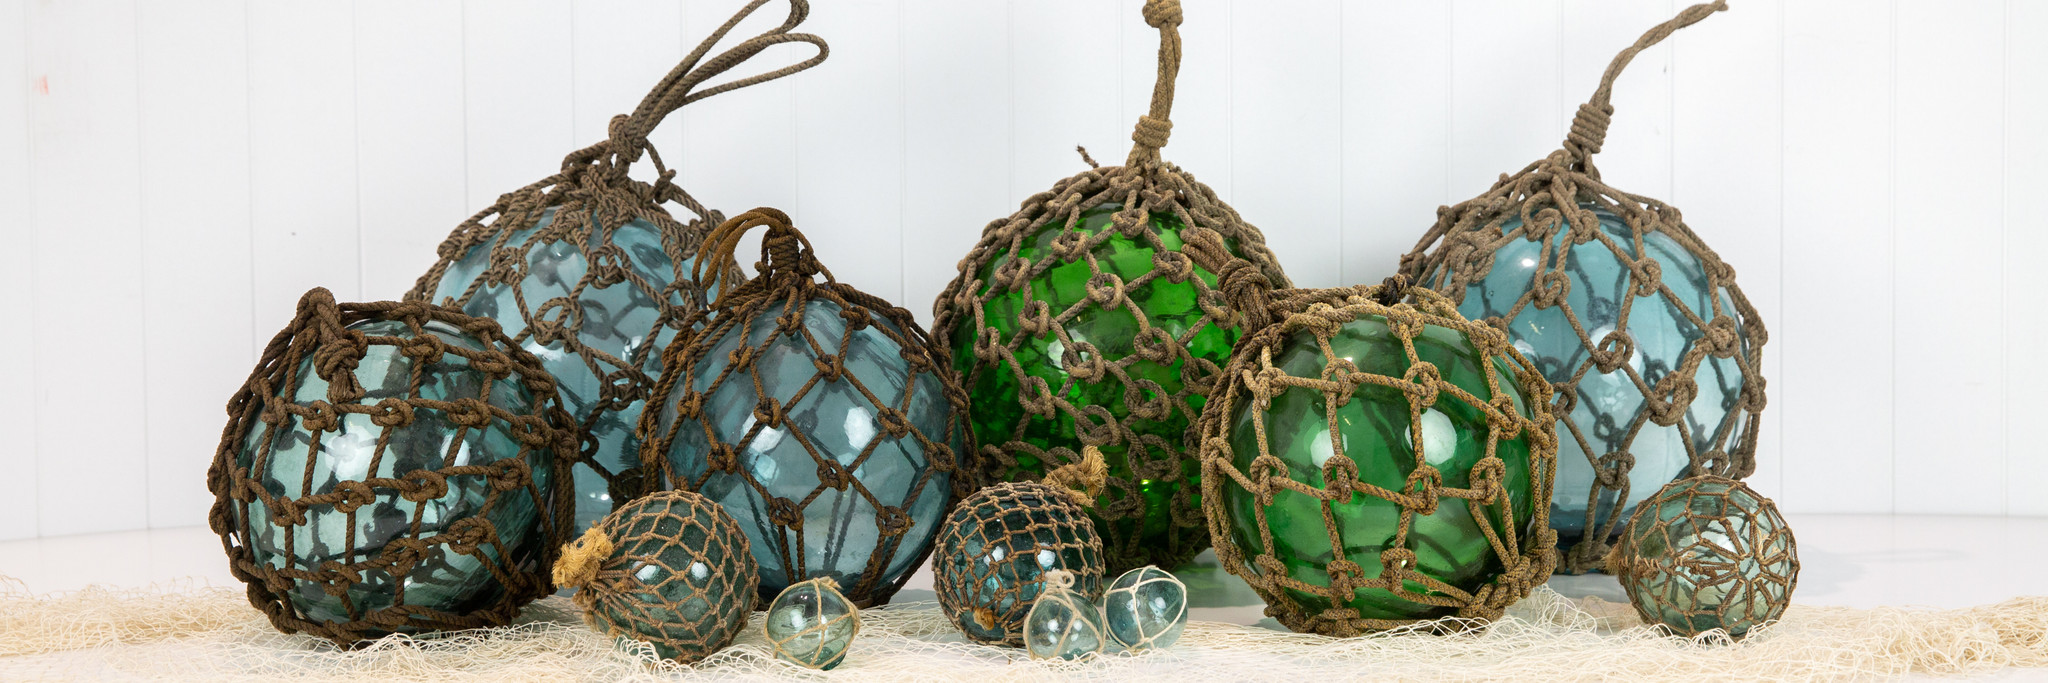 Glass Floats, Fishing & Buoys